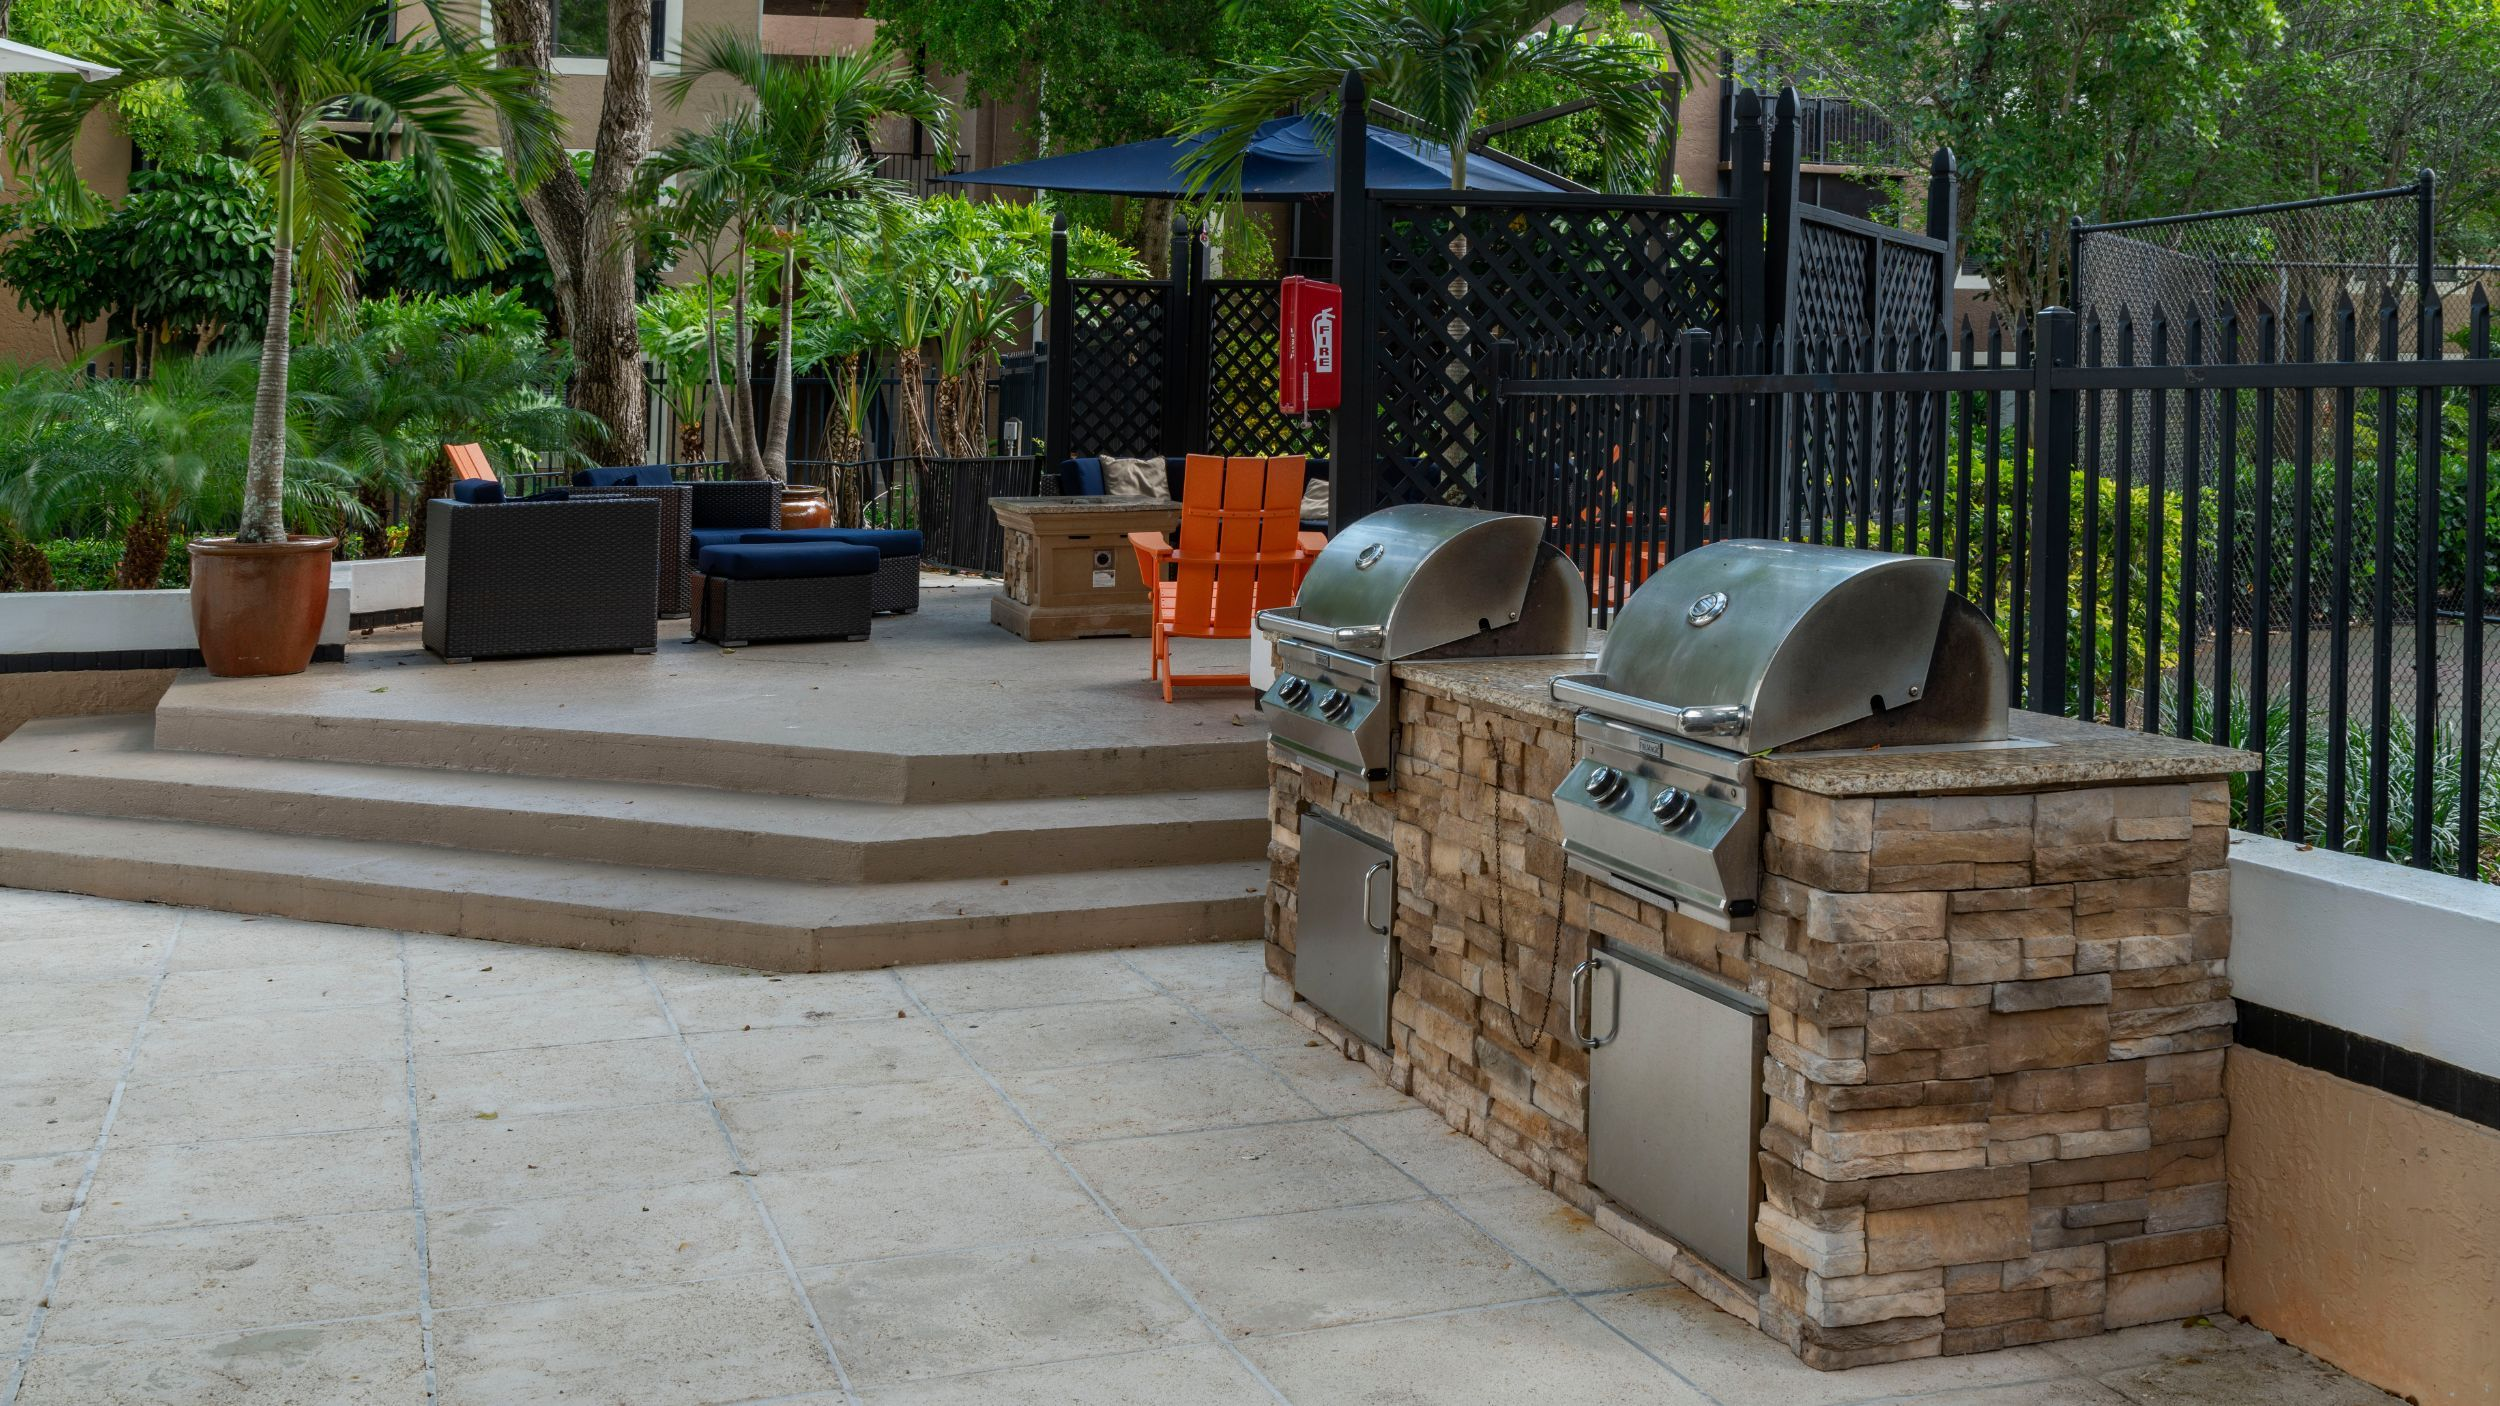 Outdoor lounge area with seating and grills